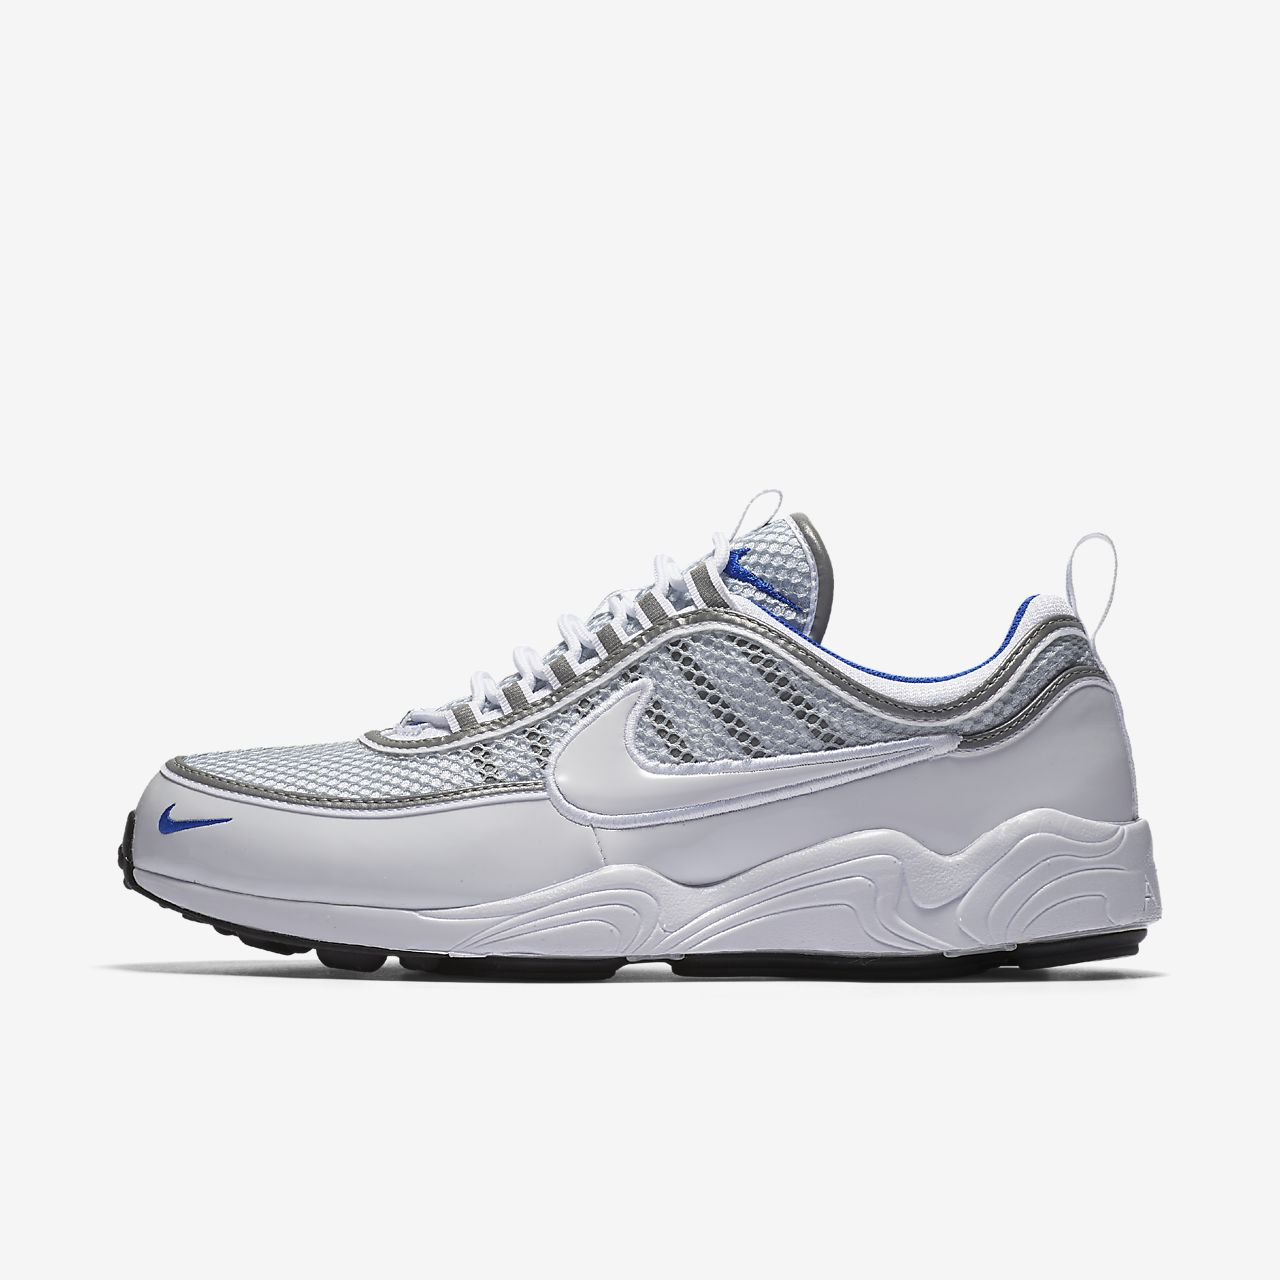 the best outlet boutique many styles Nike Air Zoom Spiridon '16 Men's Shoe